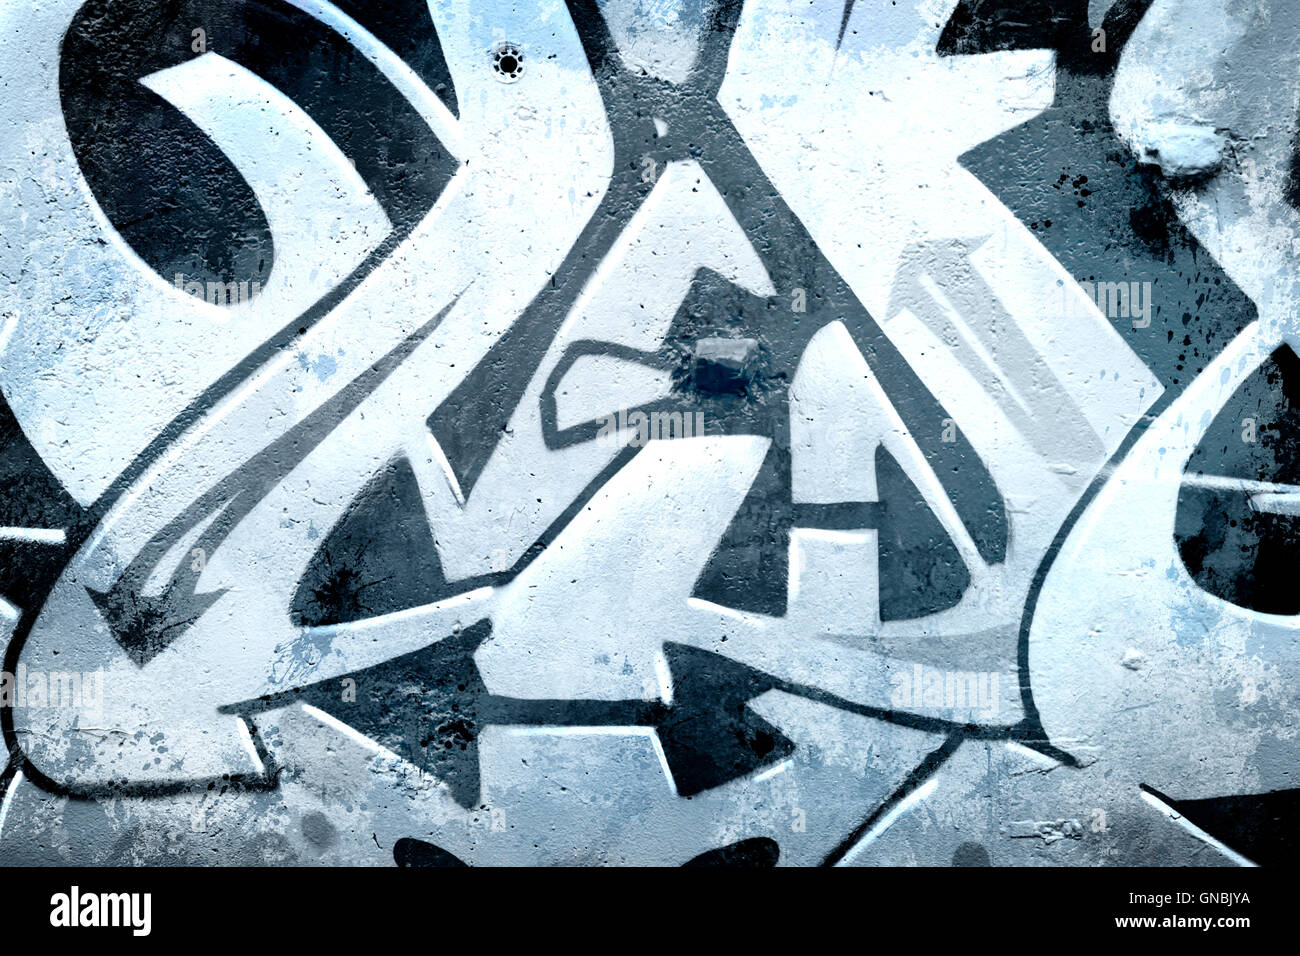 Graffiti over old dirty wall urban hip hop background gray text